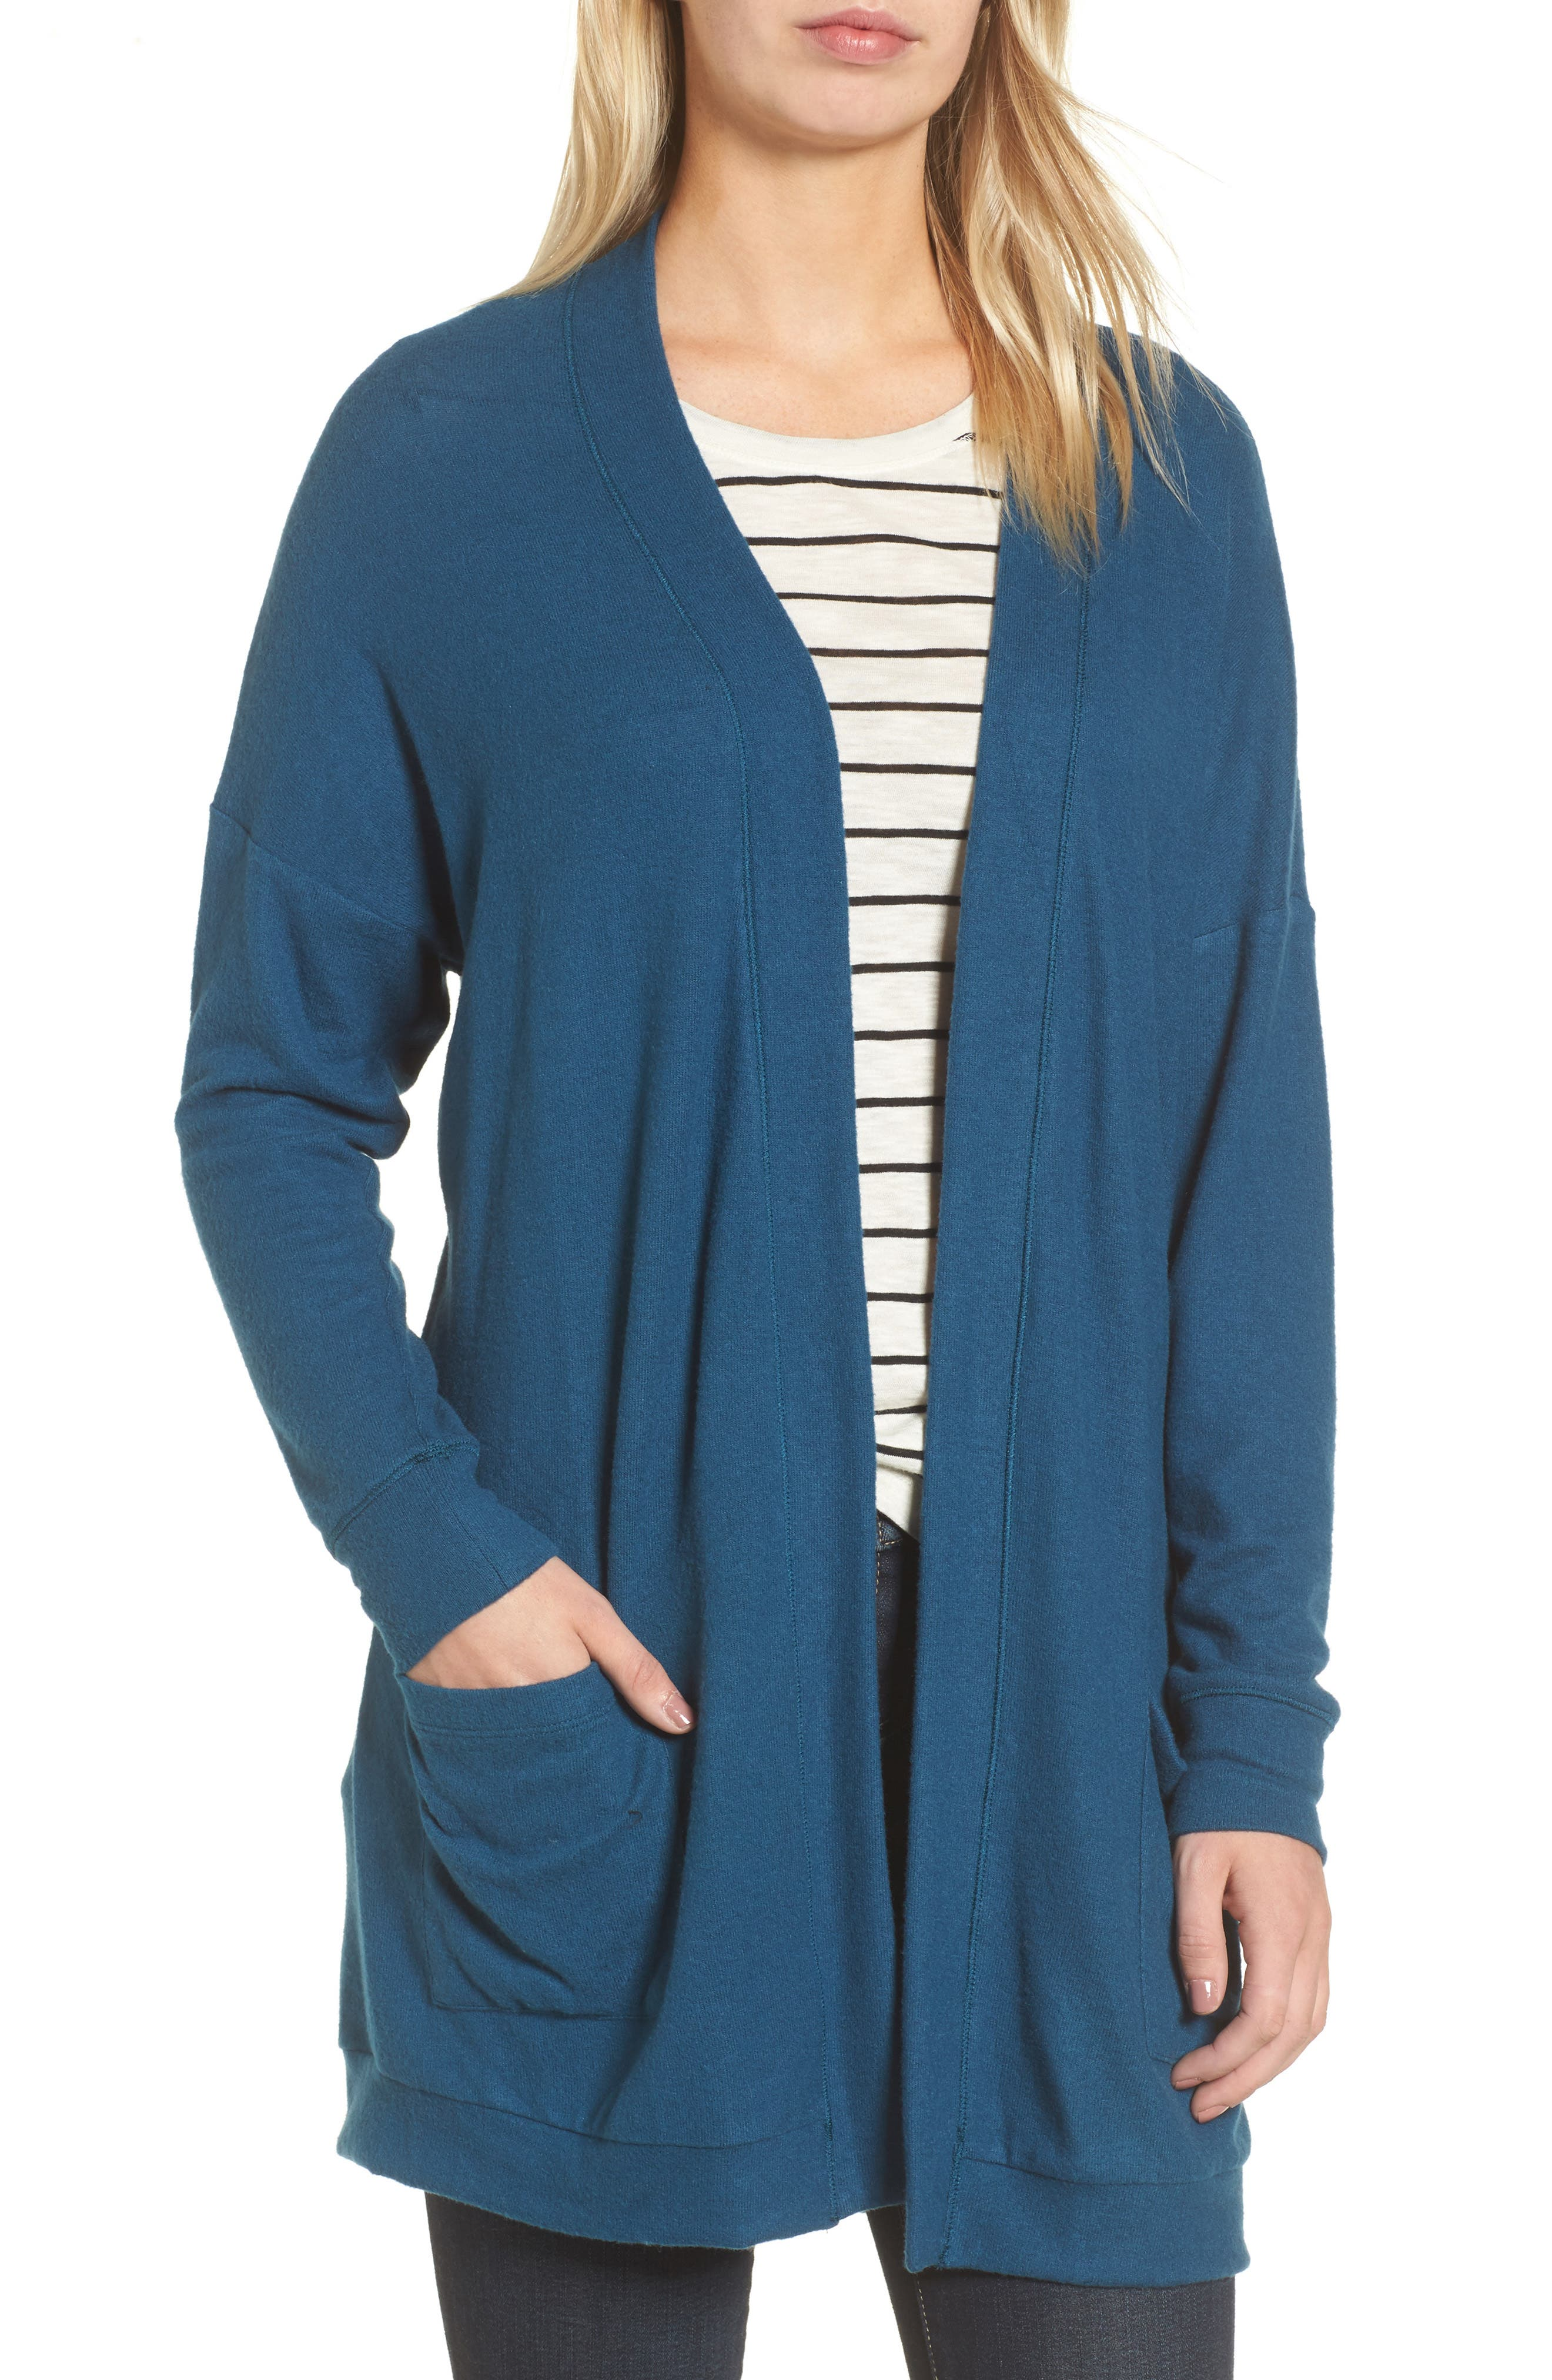 GIBSON Rib Knit Cardigan, Main, color, BLUE CERAMIC